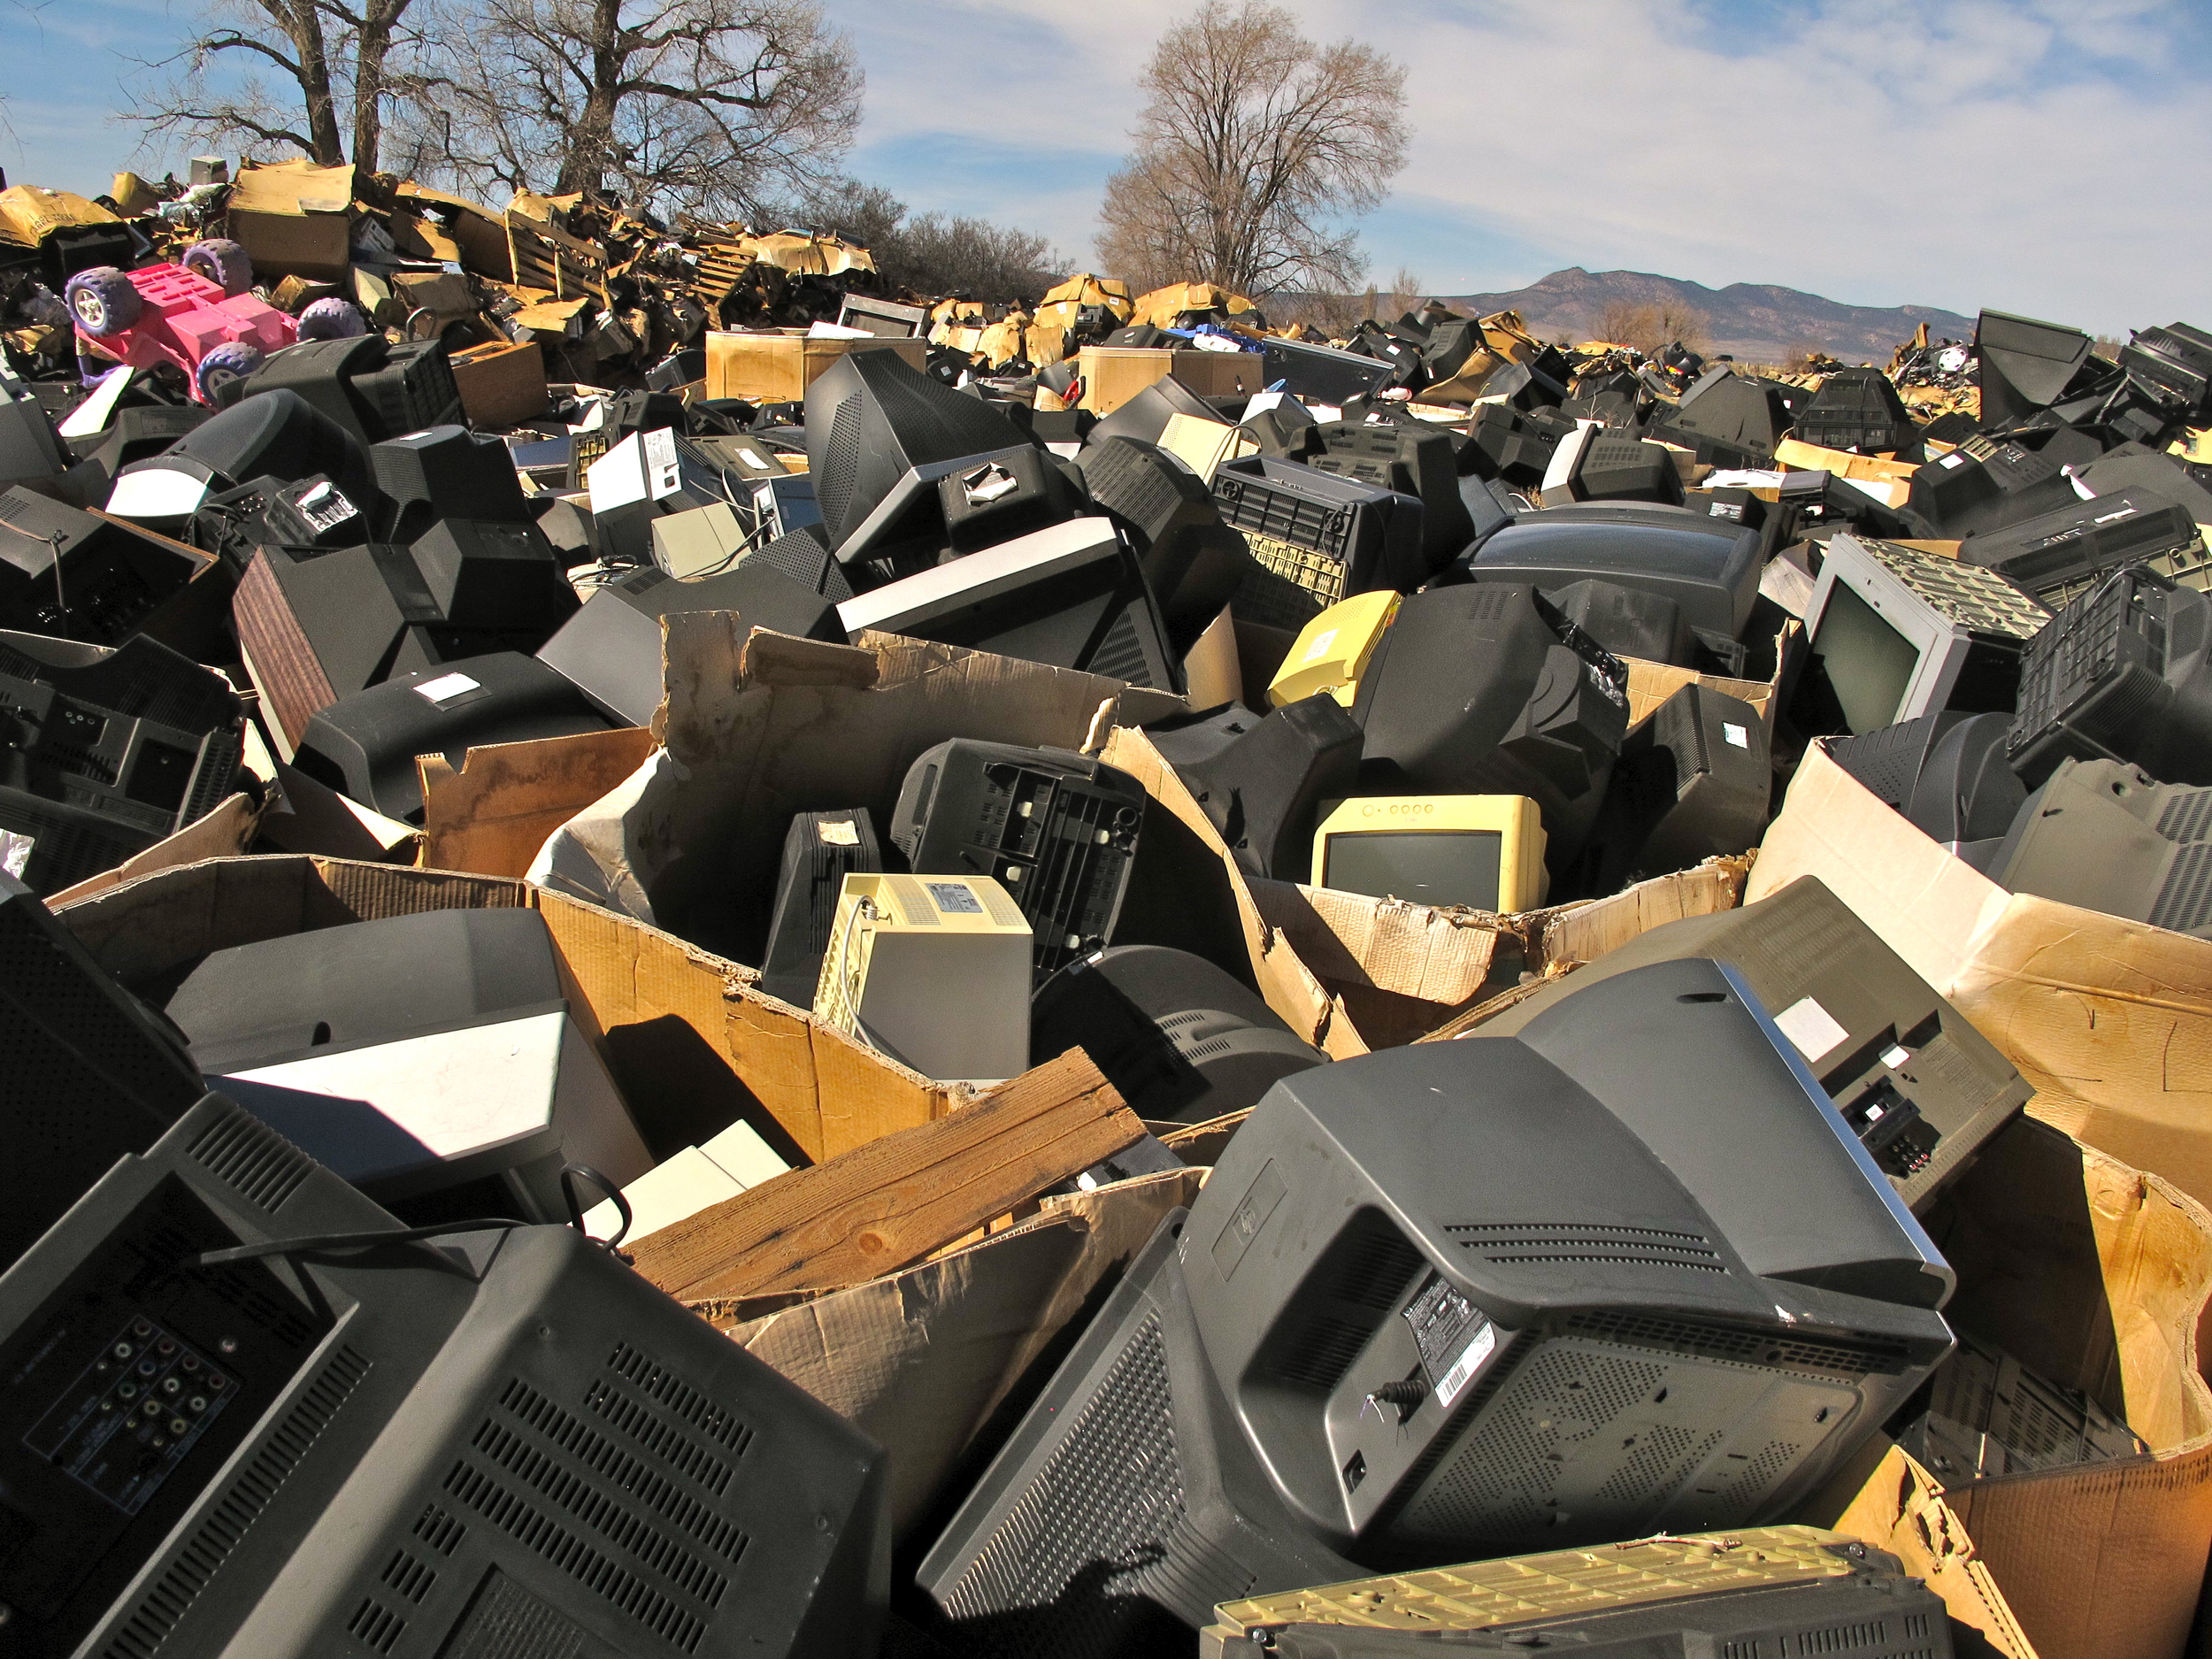 Gaylord boxes of old TVs dumped by Stone Castle LLC, in Parowan, Utah. Copyright BAN 2014.